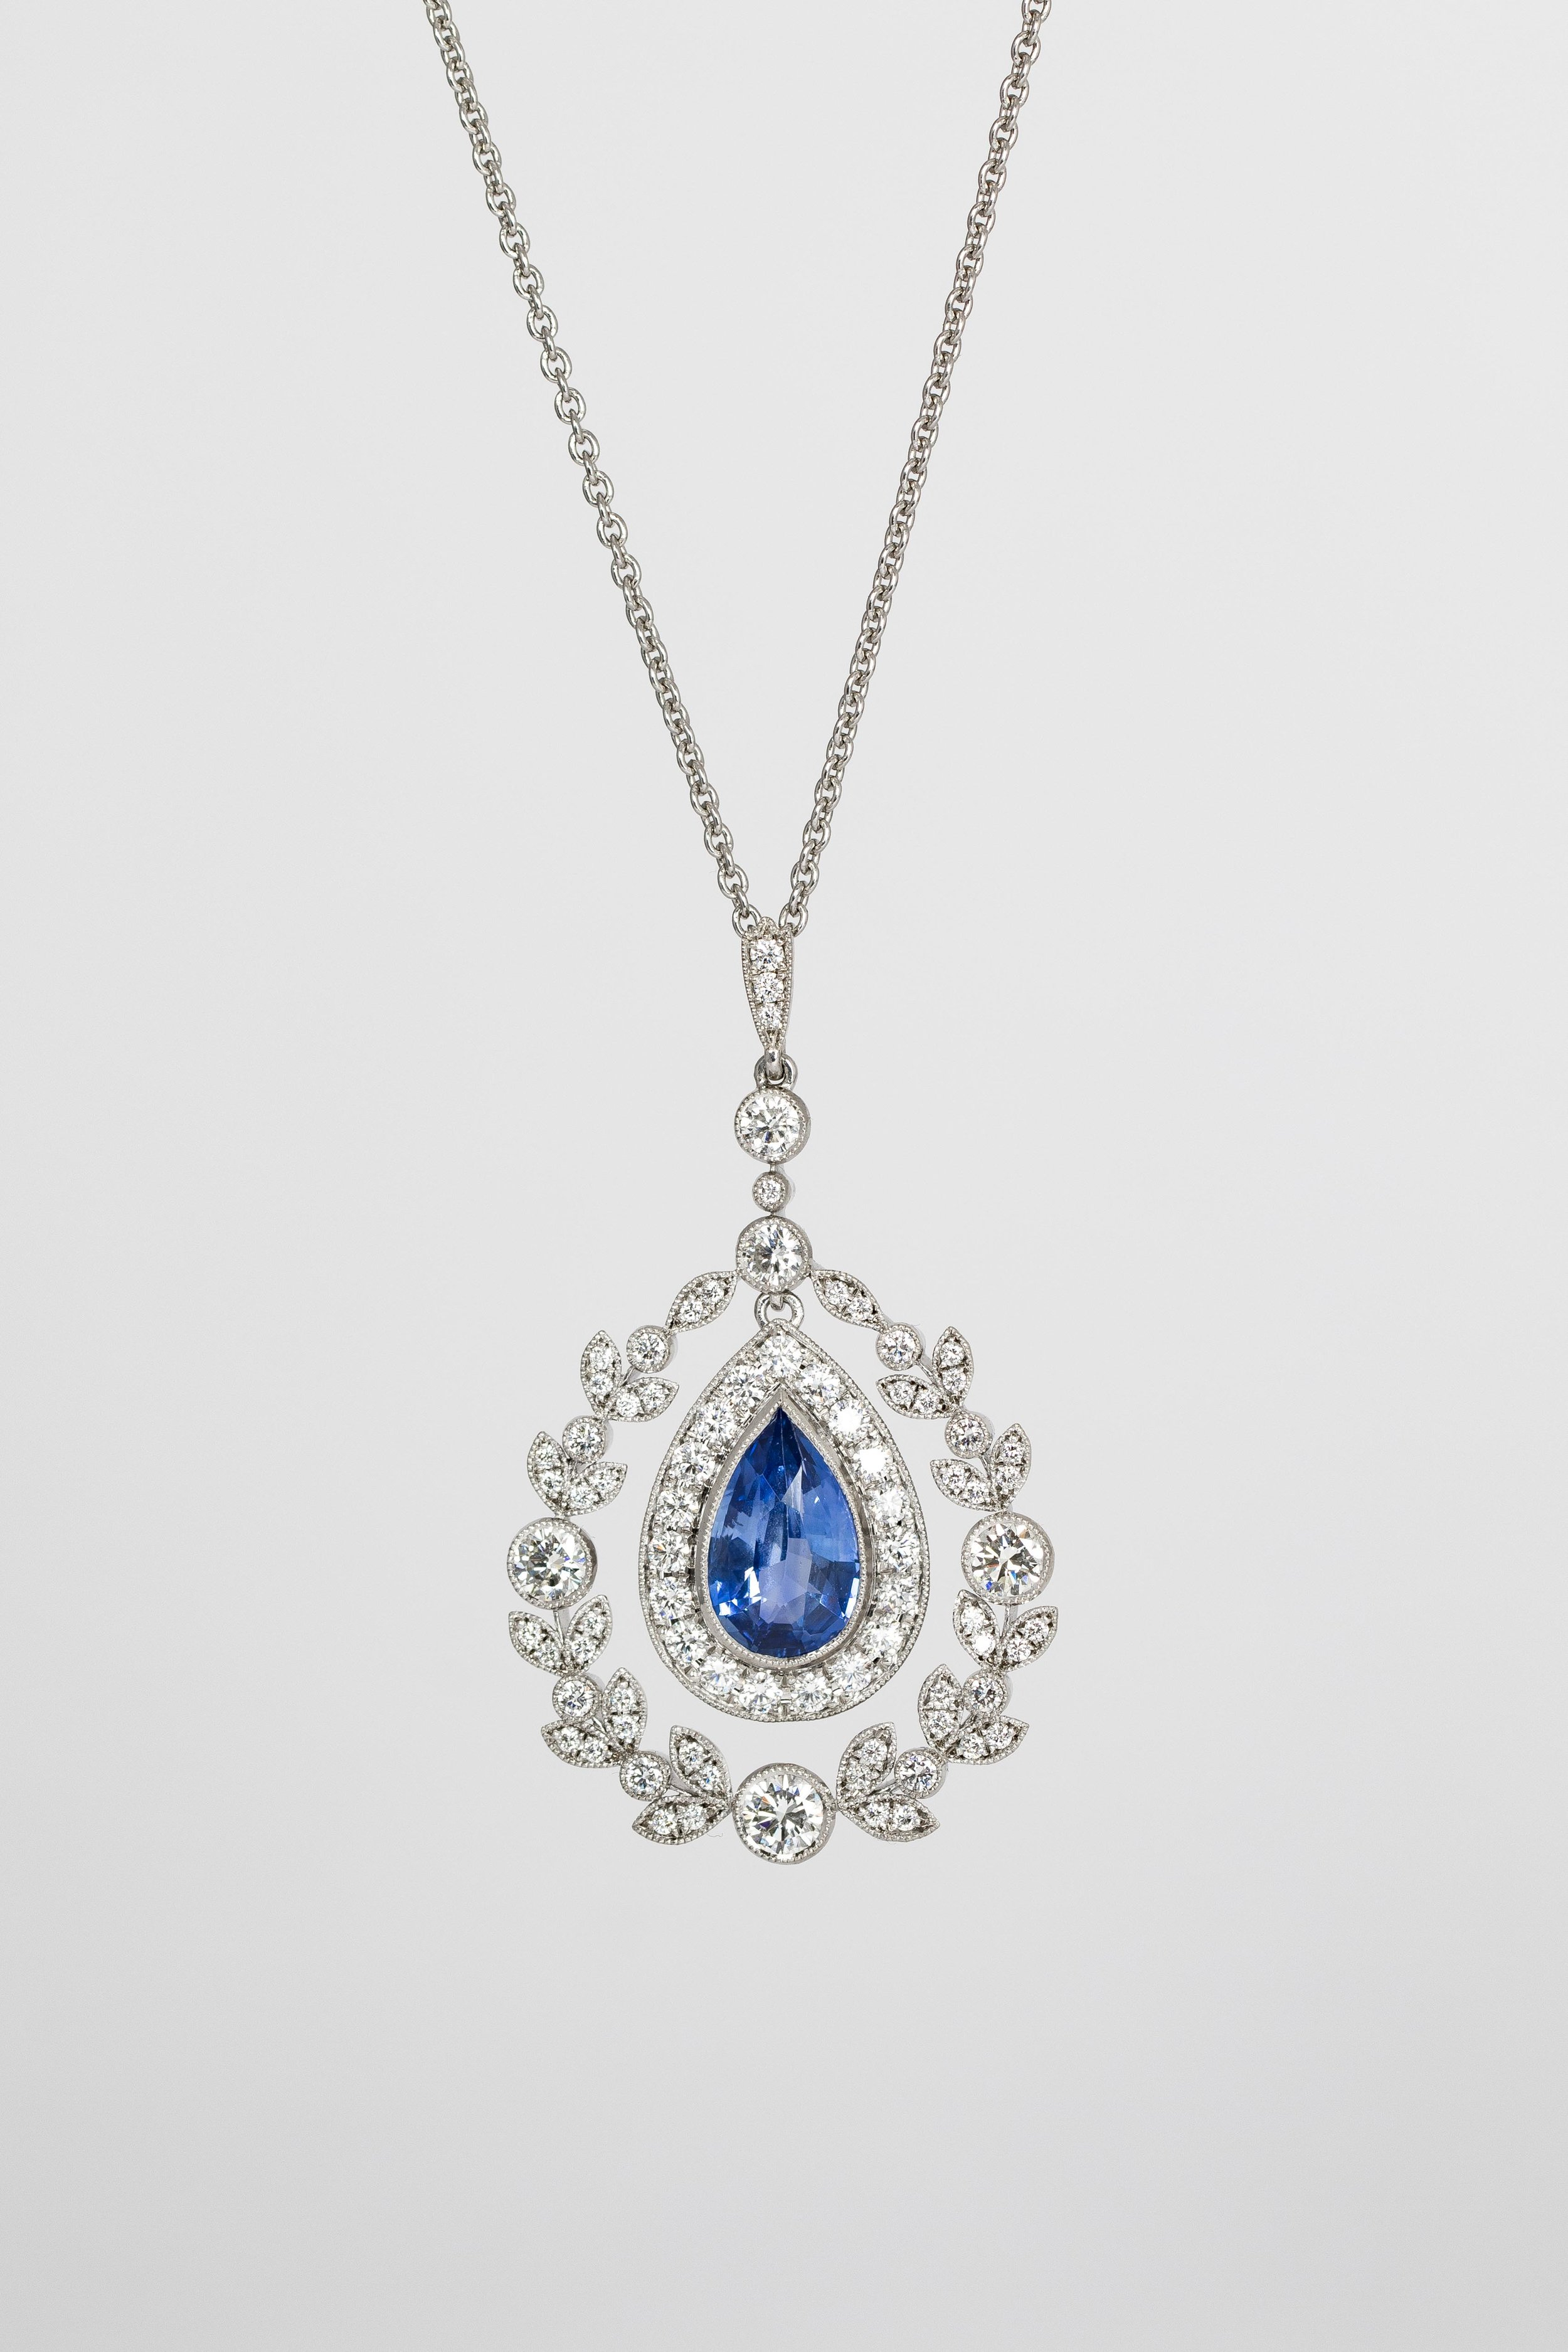 18ct white gold mounted pear-shaped sapphire and diamond set Edwardian style pendant. Made in Chichester, England.